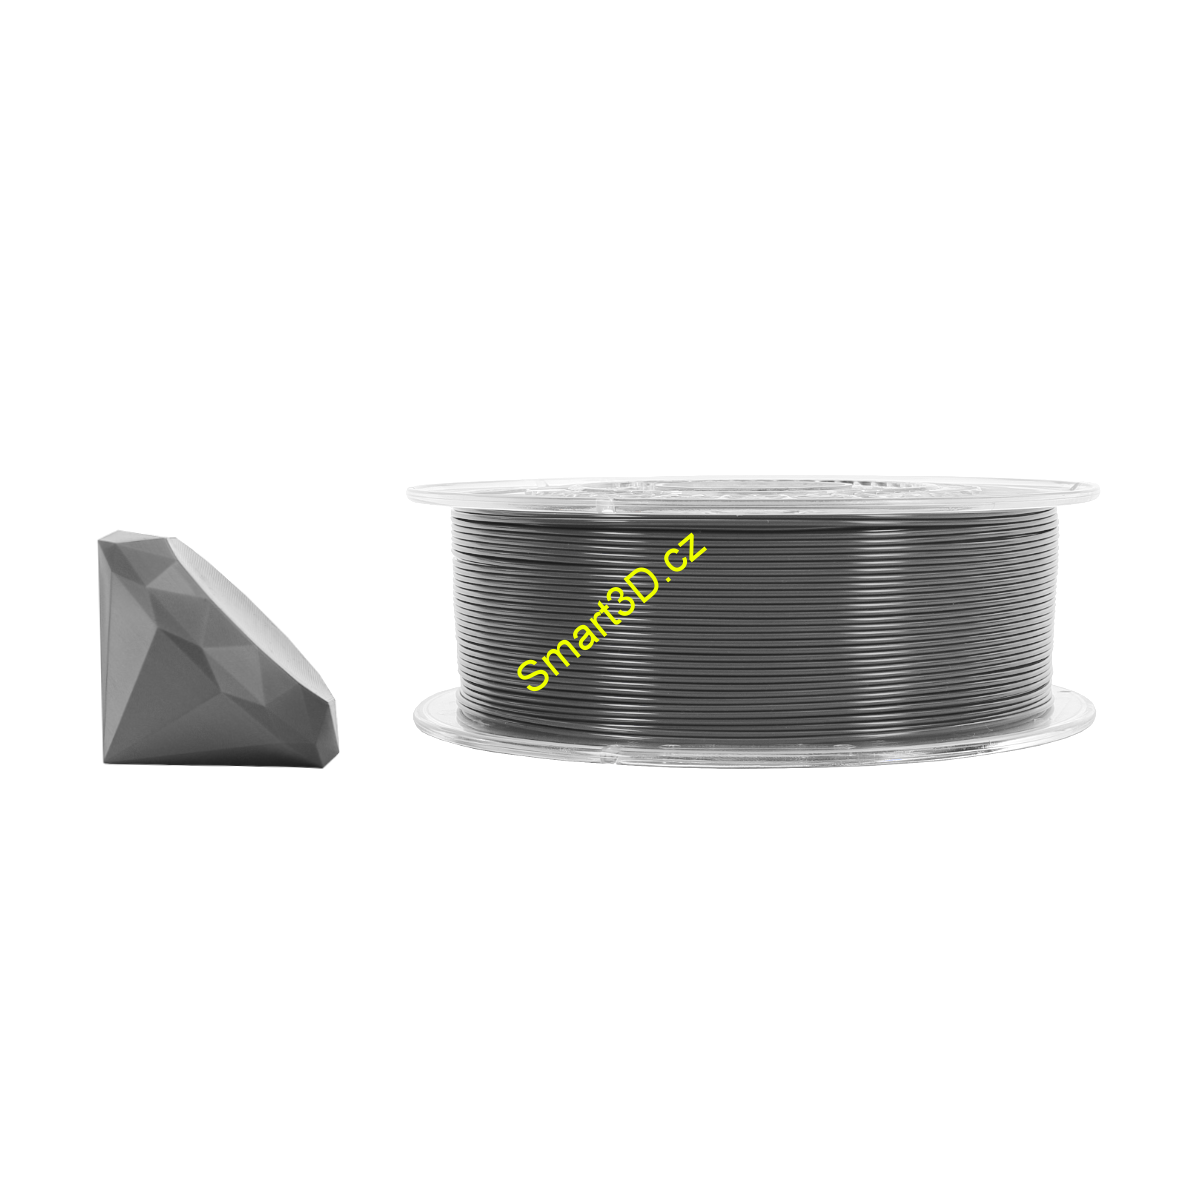 "Filament PRINT IT!  / PLA / ŠEDÁ ""SHADOW"" / 1,75 mm / 1 kg."